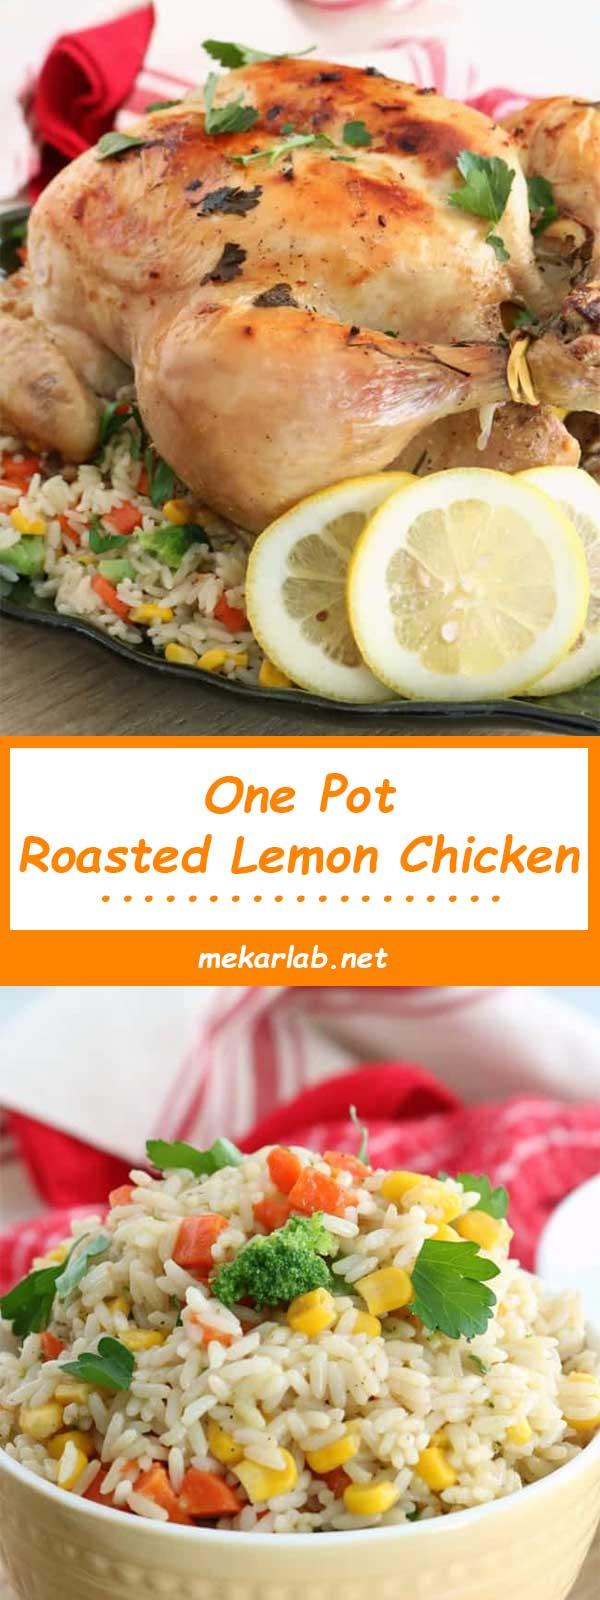 One-Pot-Roasted-Lemon-Chicken